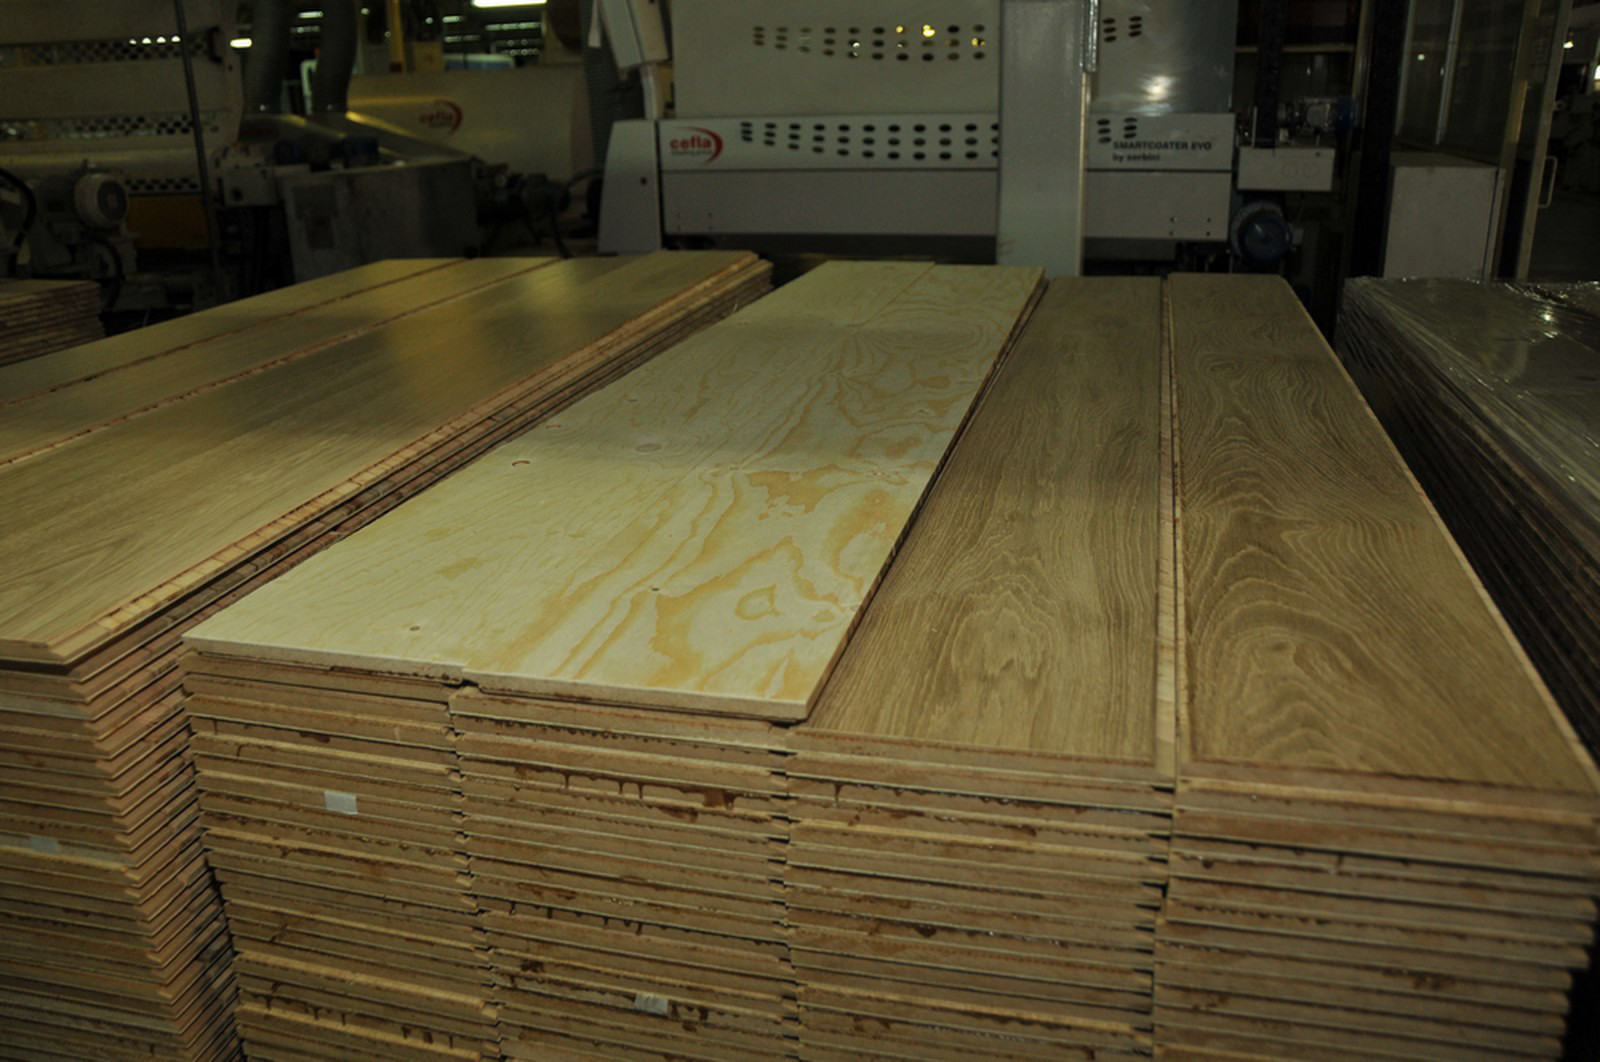 Hardwood Flooring Manufacturing Equipment Of Malaysian Timber Council Inside 1